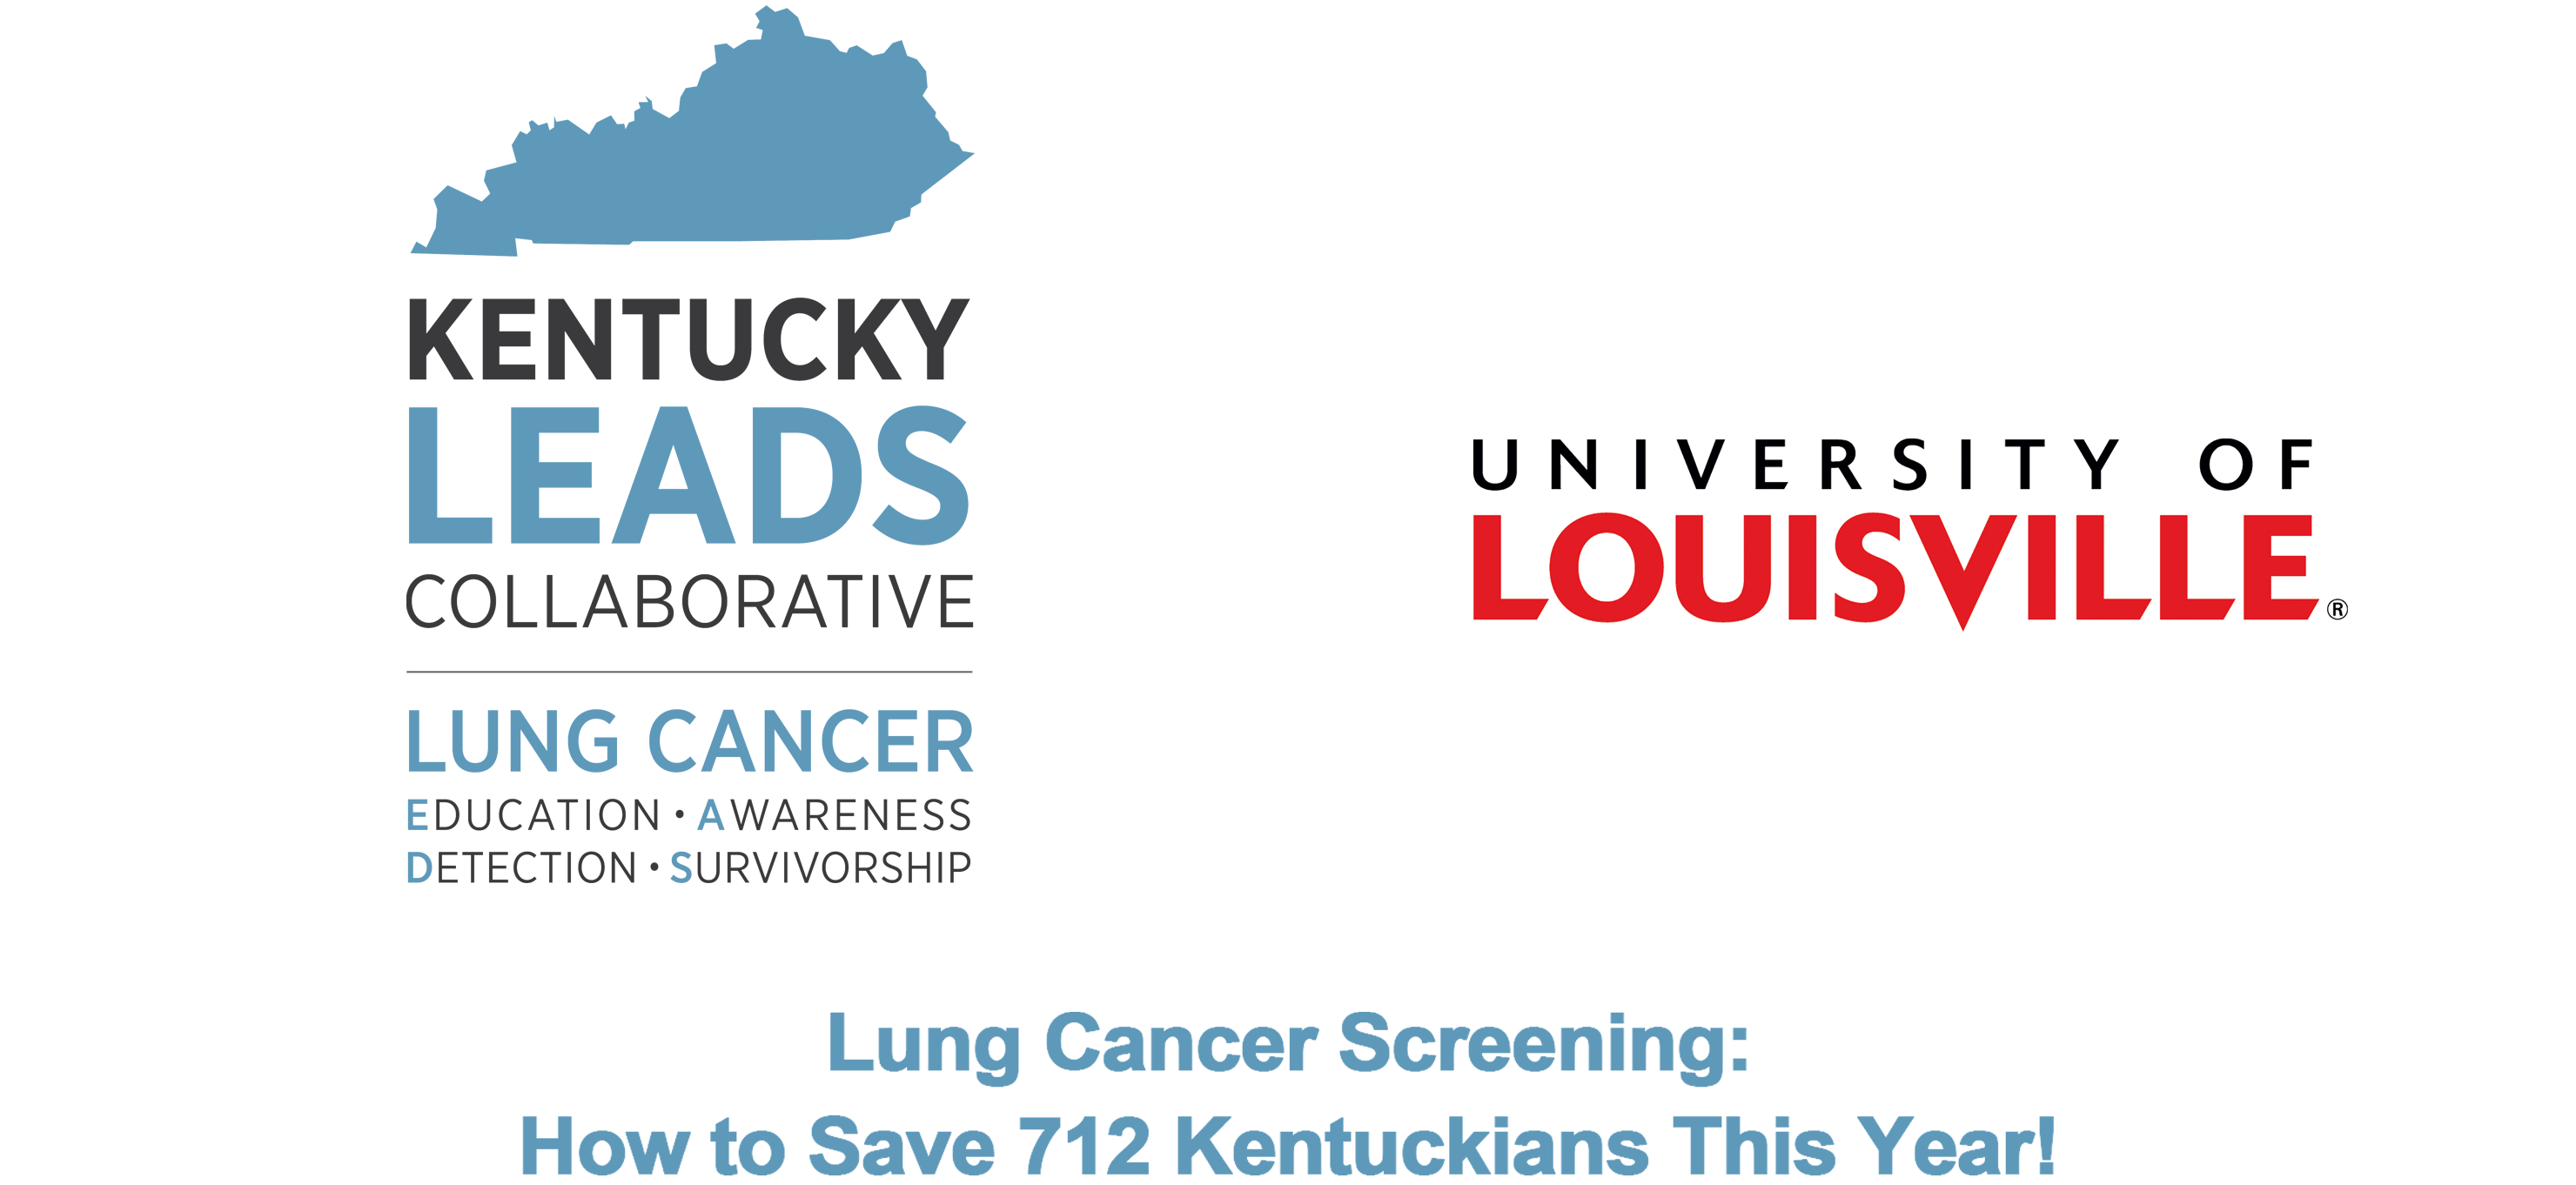 Lung Cancer Screening: How to Save 712 Kentuckians This Year!